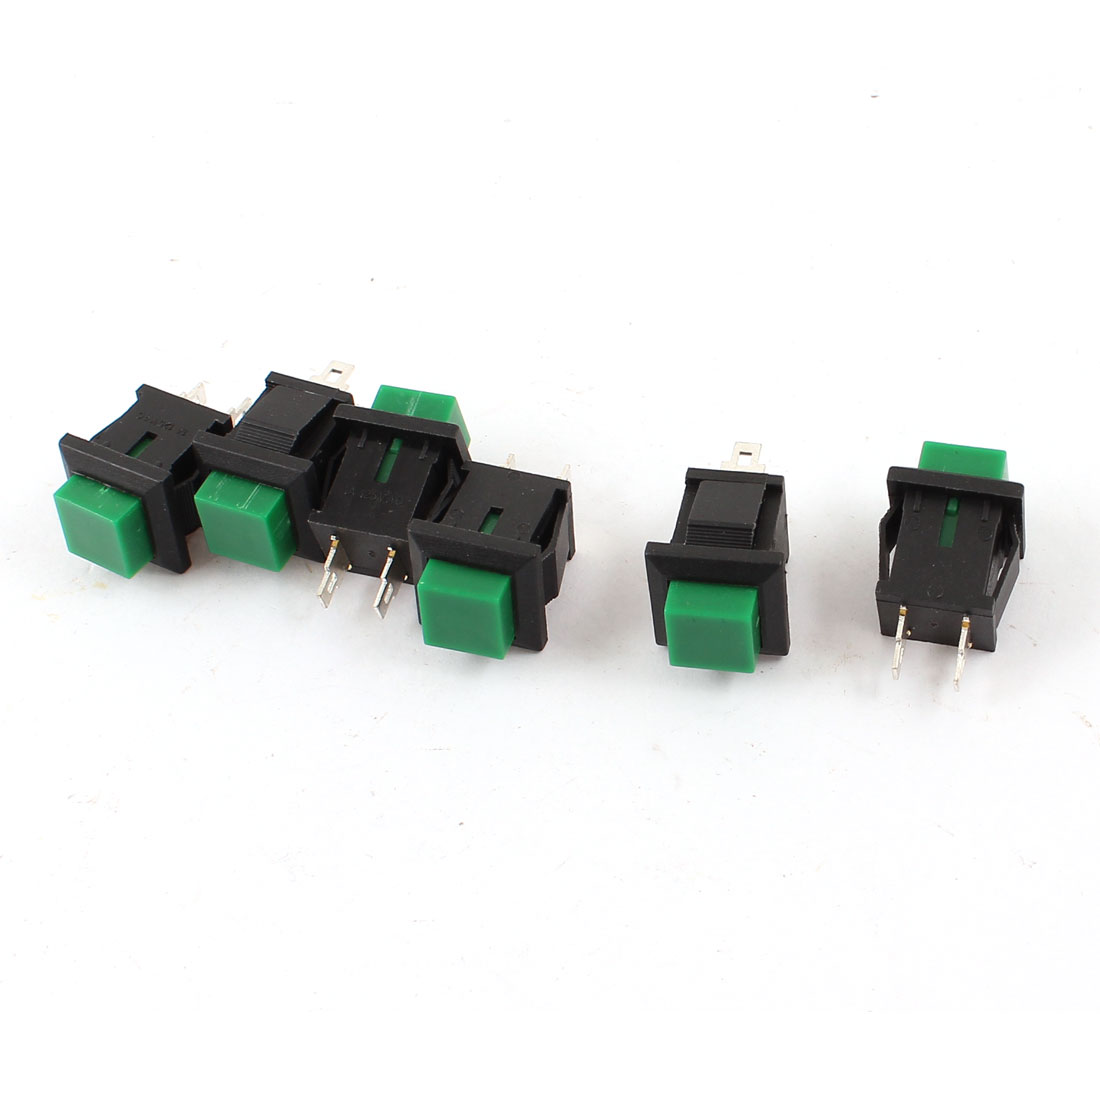 6 Pcs Momentary SPST Green Square Head Push Button Switch AC 125V 1A